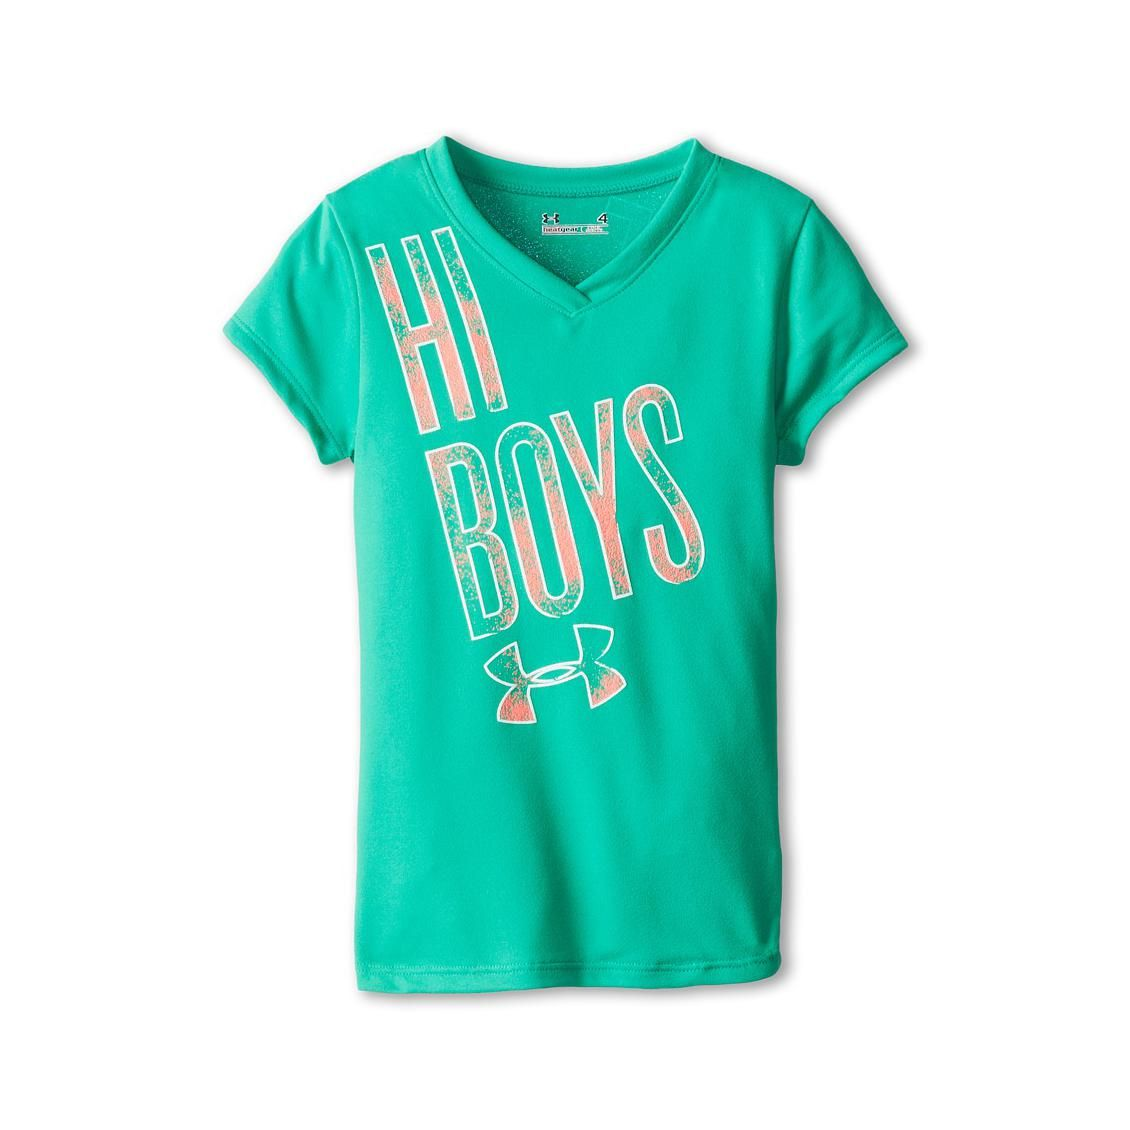 under armour tank tops for girls. under armour tank tops girls - google search for e